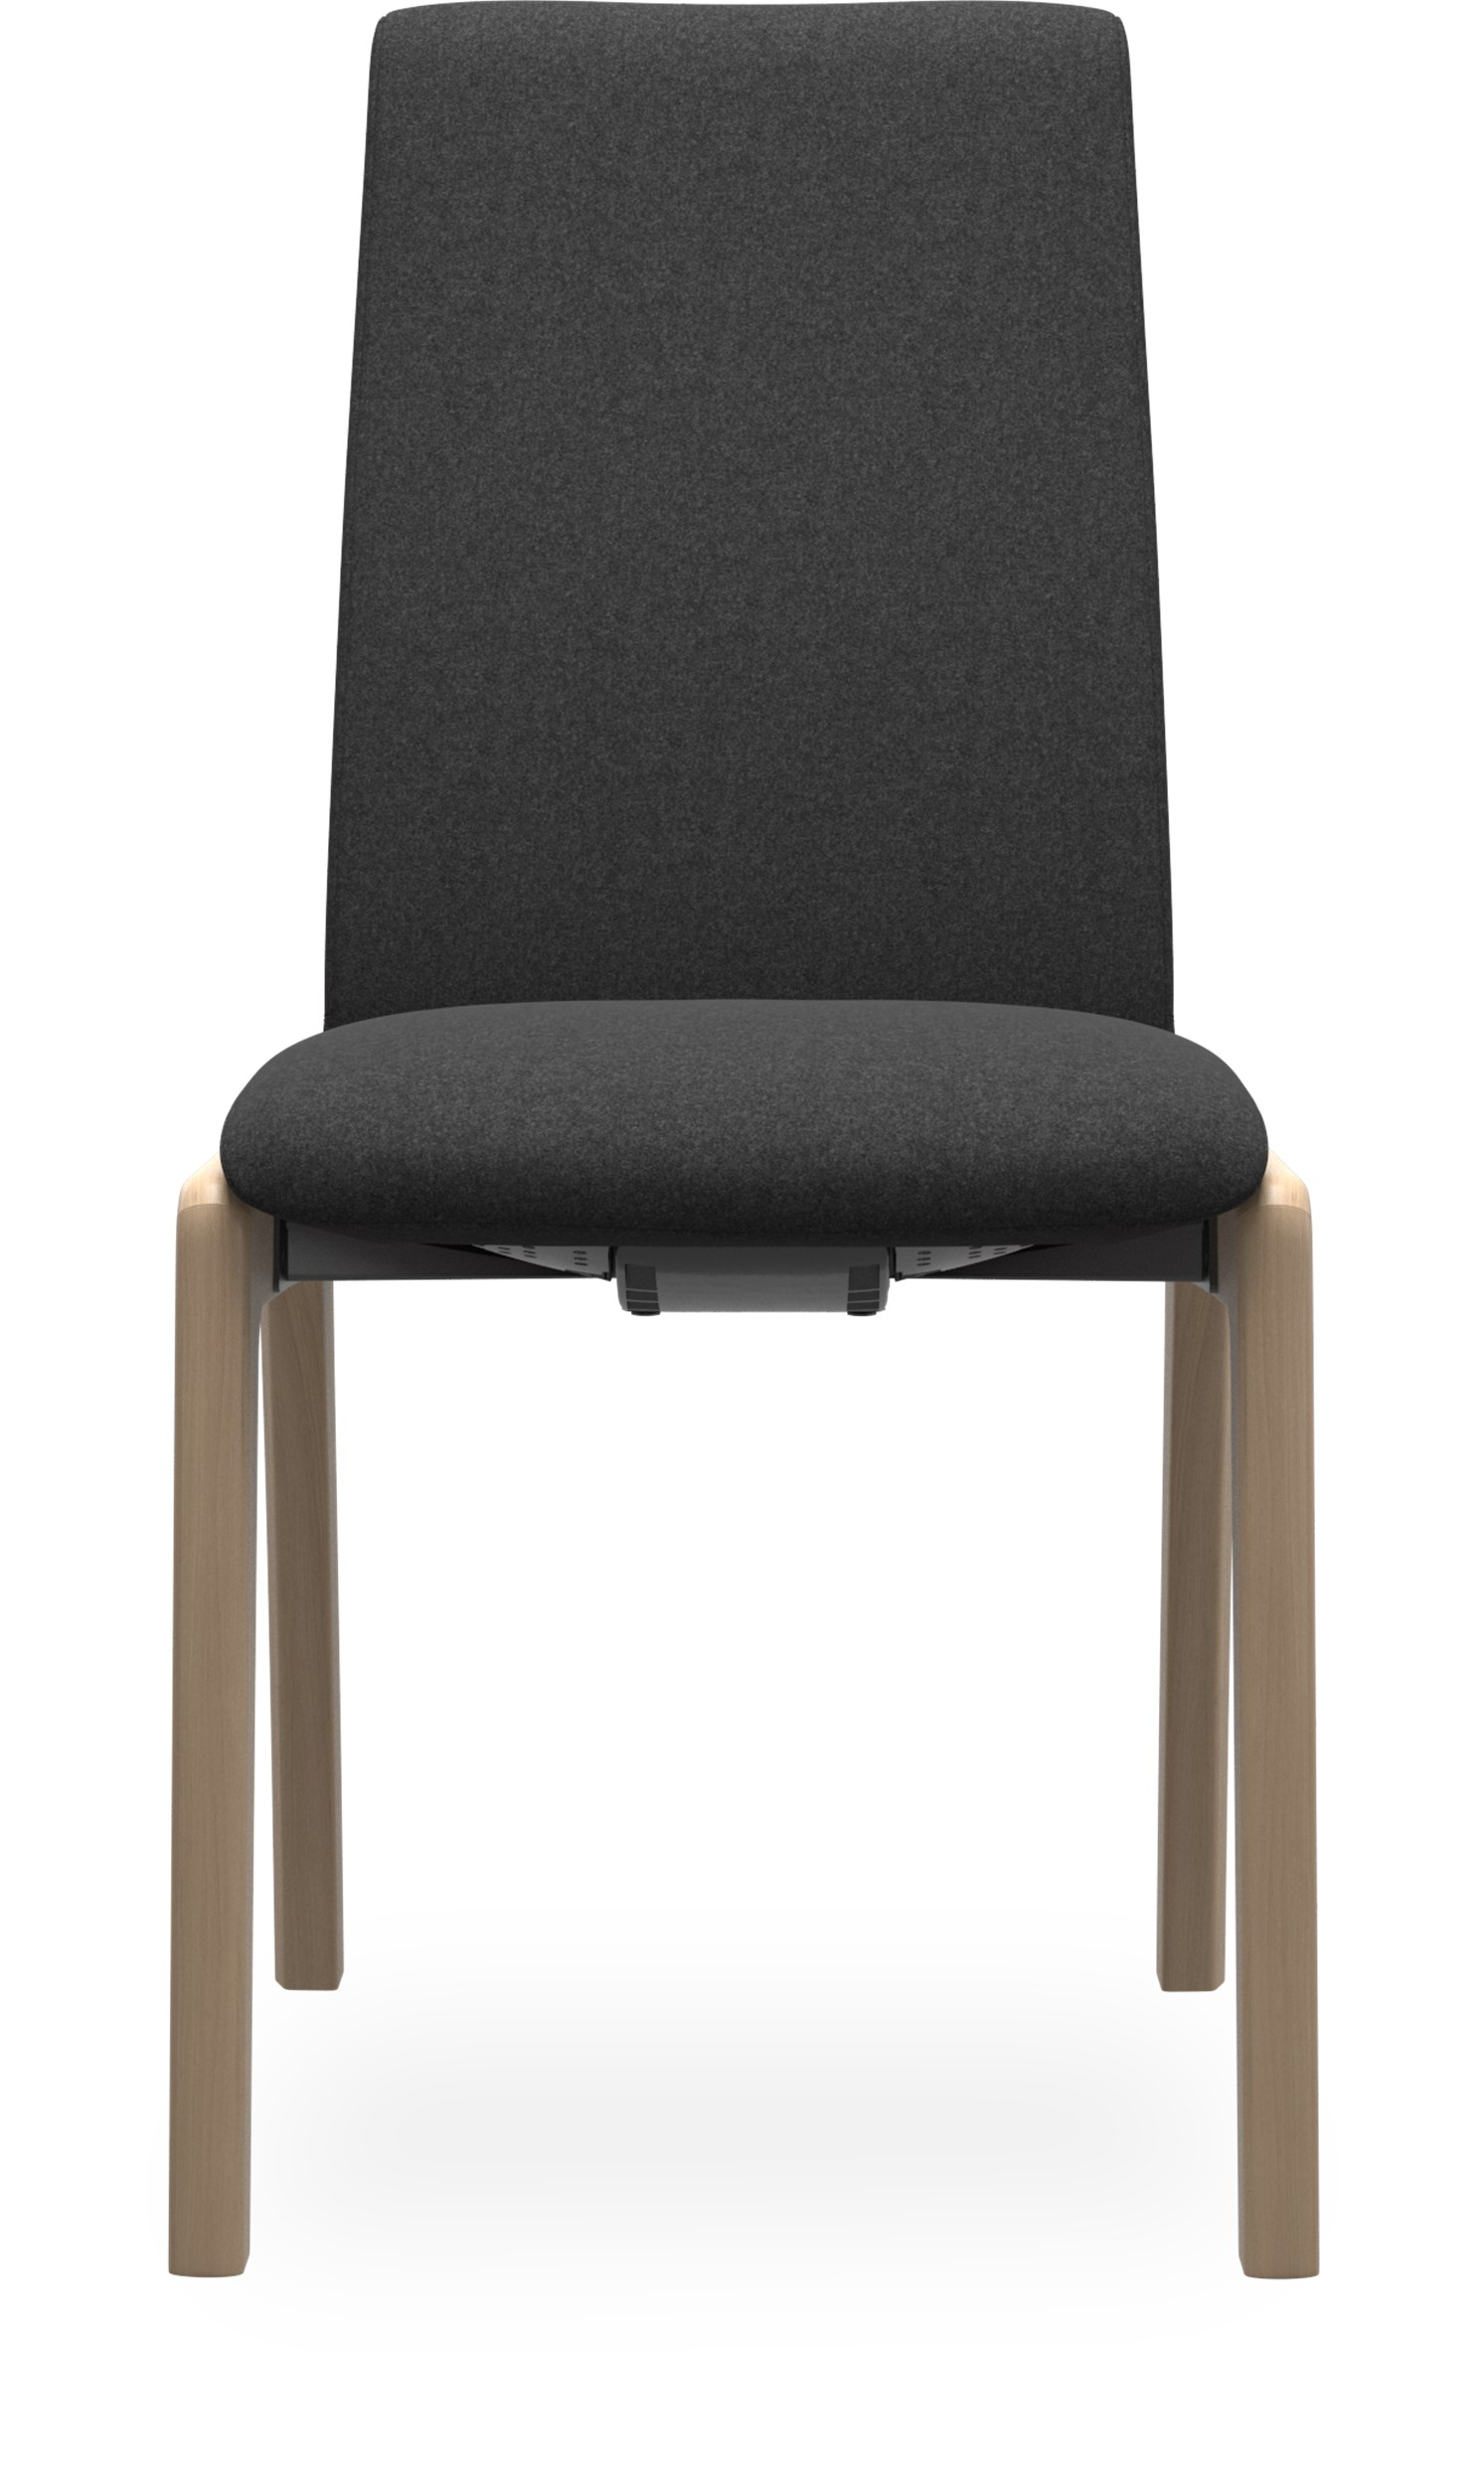 Stressless M D100 Laurel low Spisebordsstol - Calido 579-16 Dark Grey stof og stel i lakeret, massiv eg